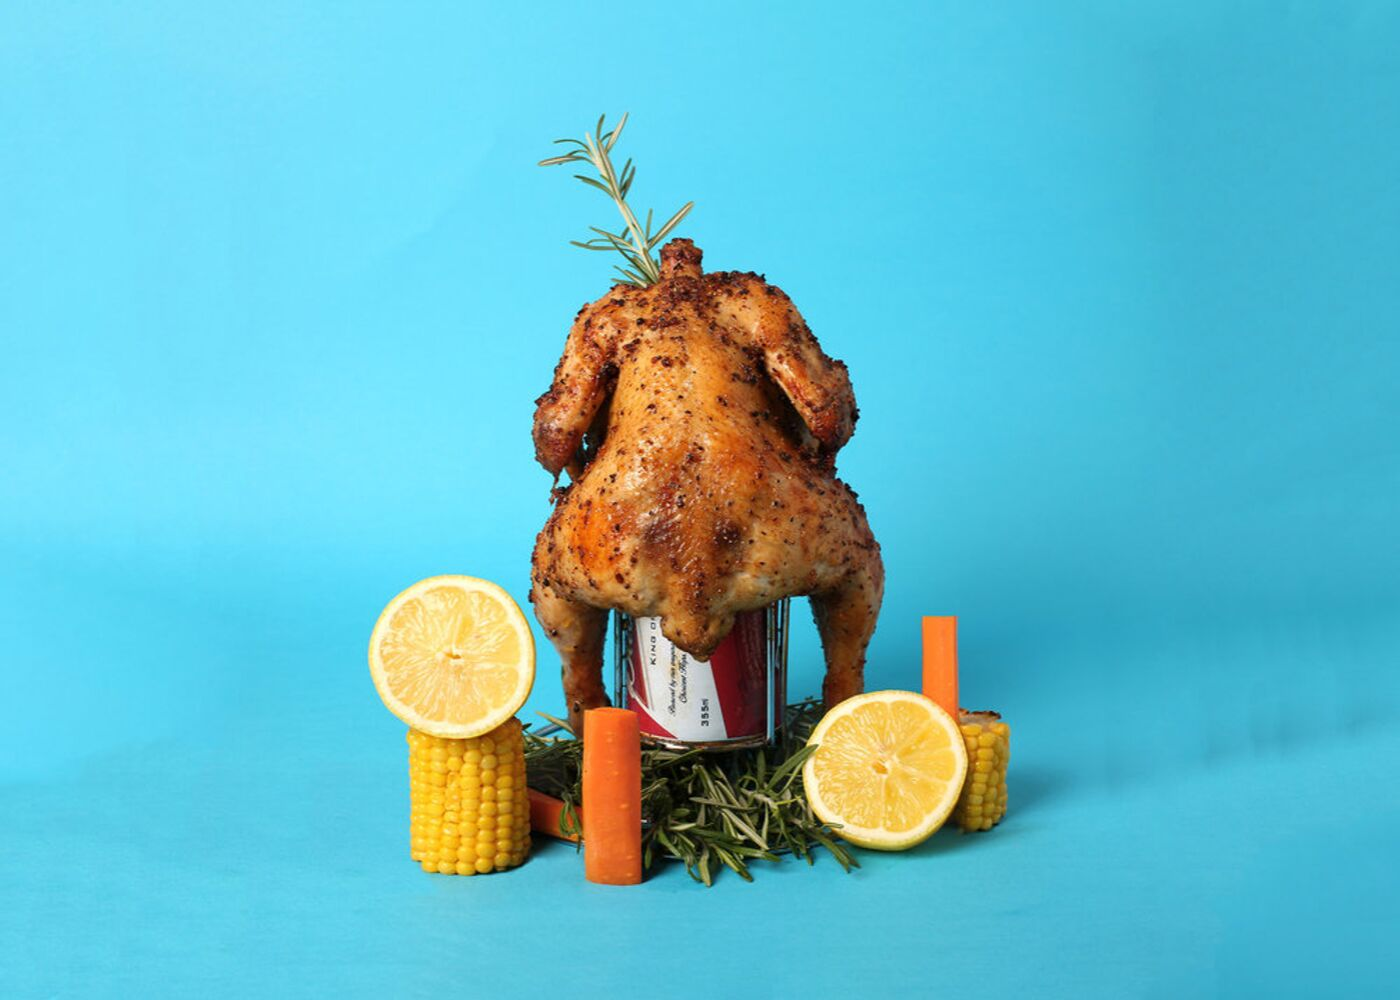 OverEasy's beer can chicken